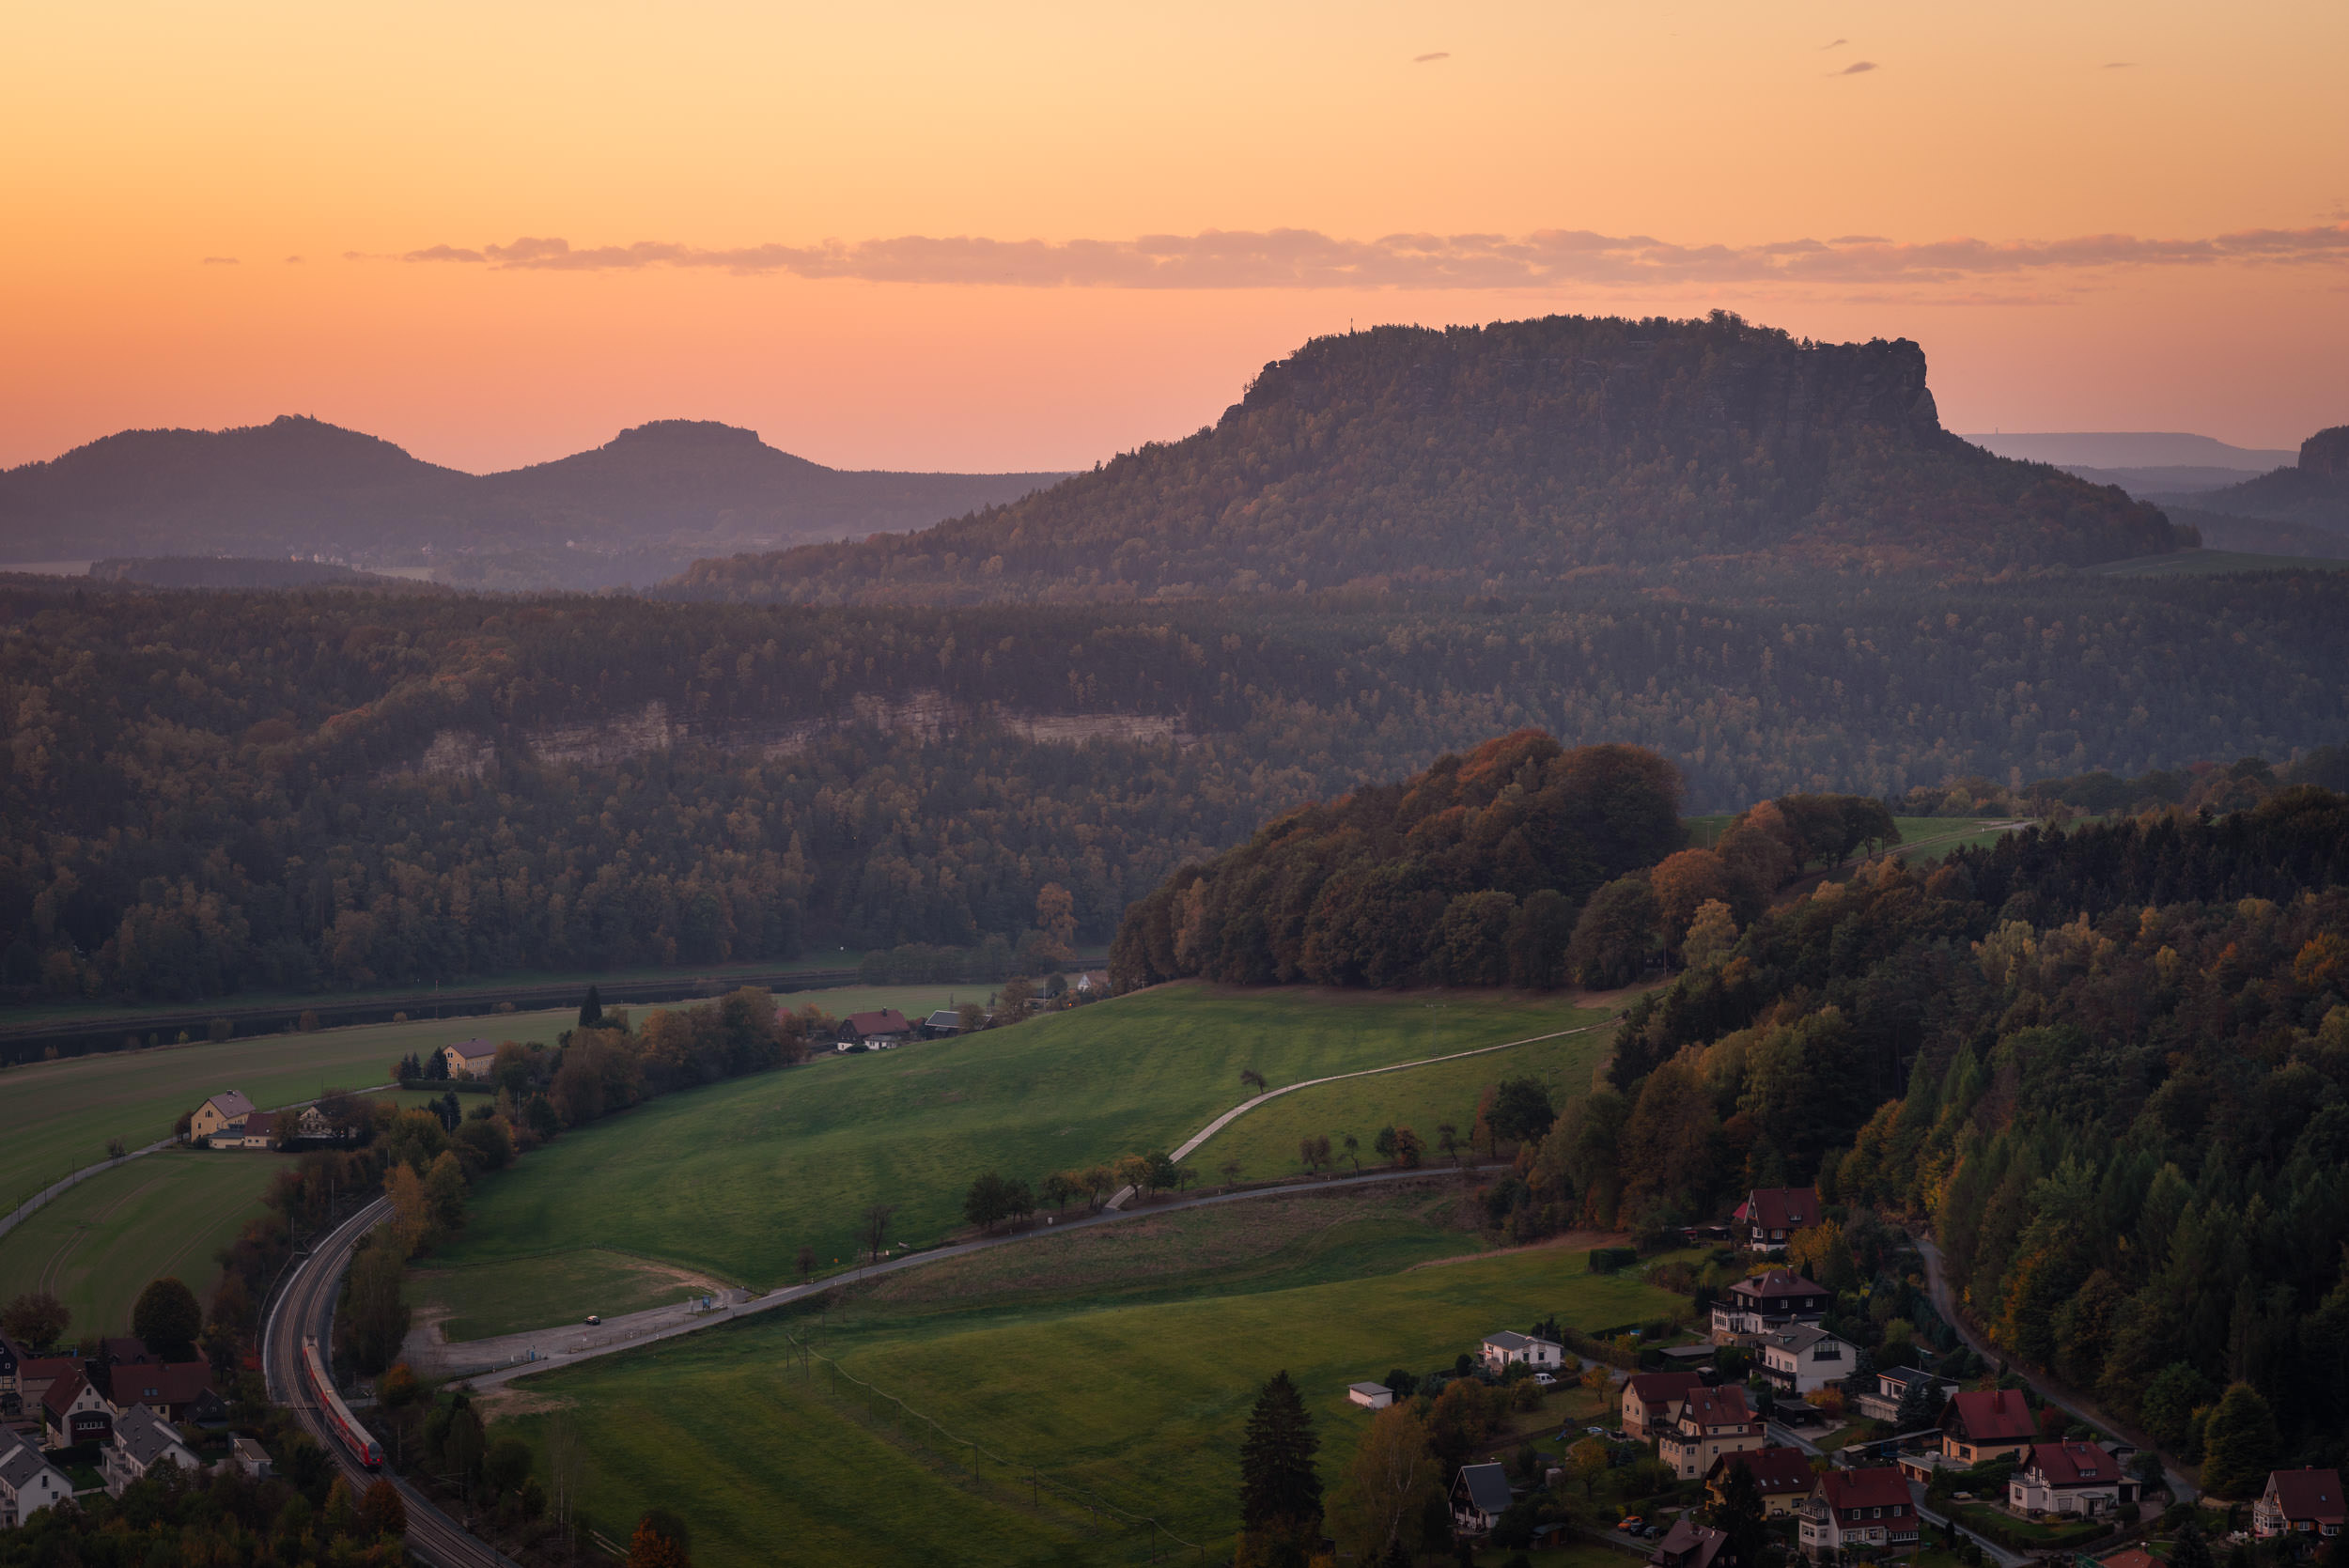 Sunrise over Rathen - Landscape Photography in Saxon Switzerland during Autumn